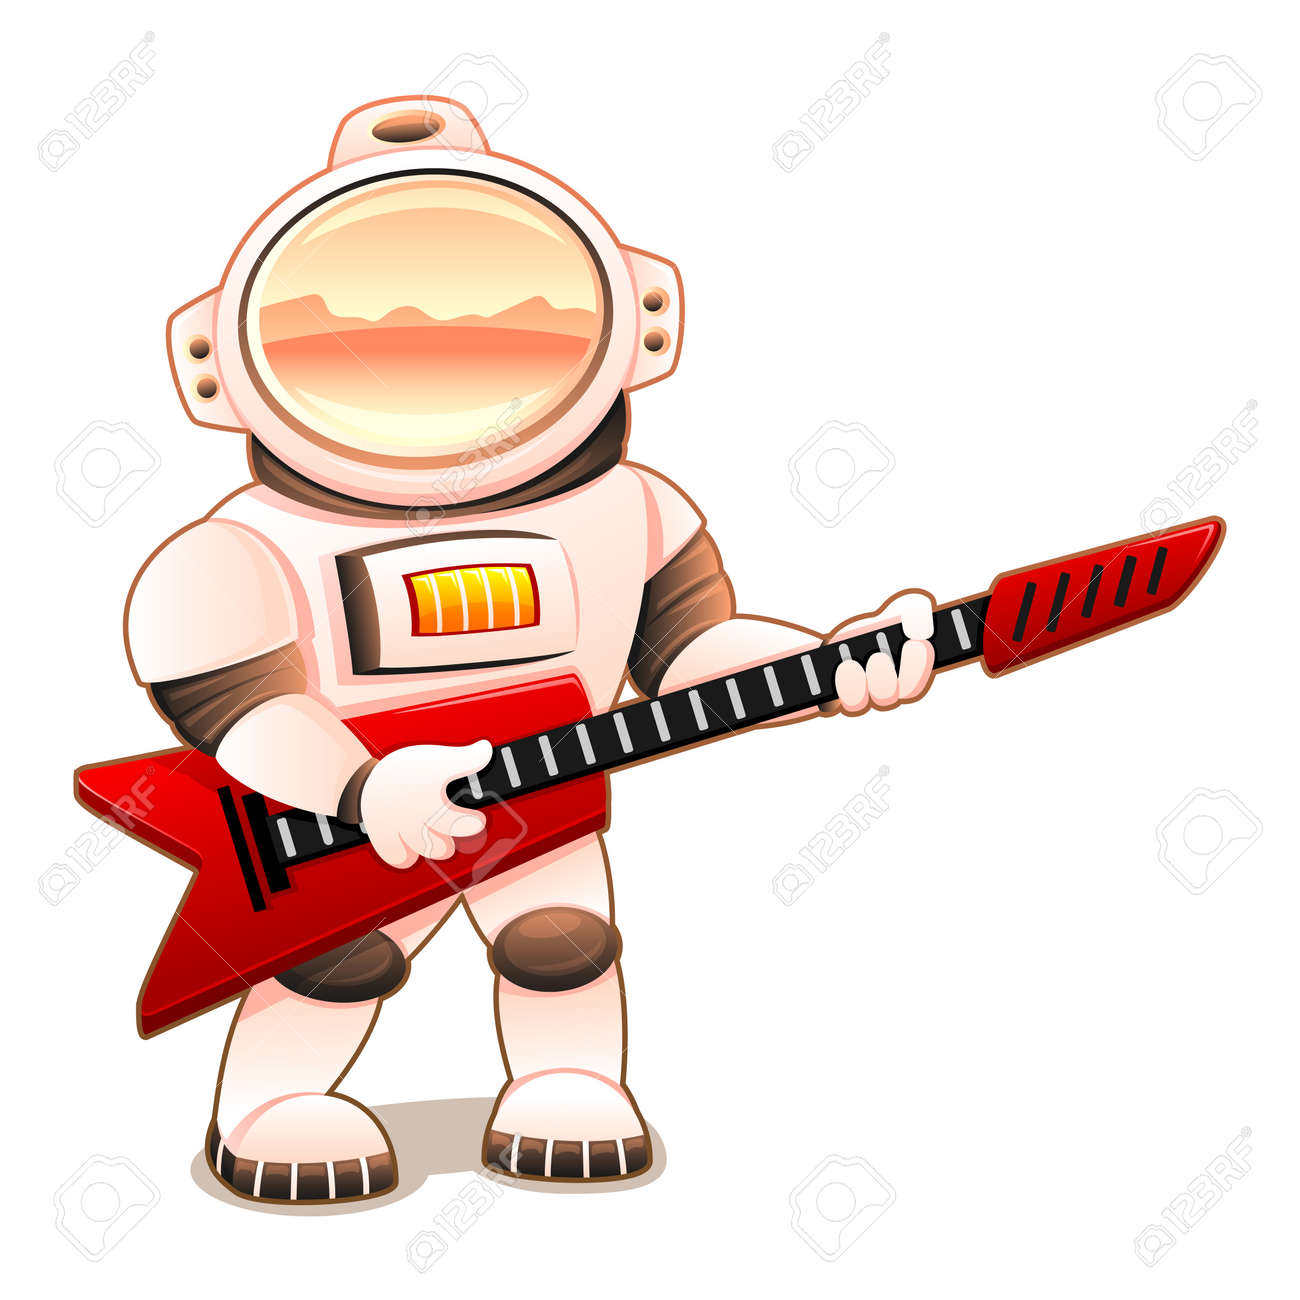 Astronaut with red guitar on white background. - 165135917